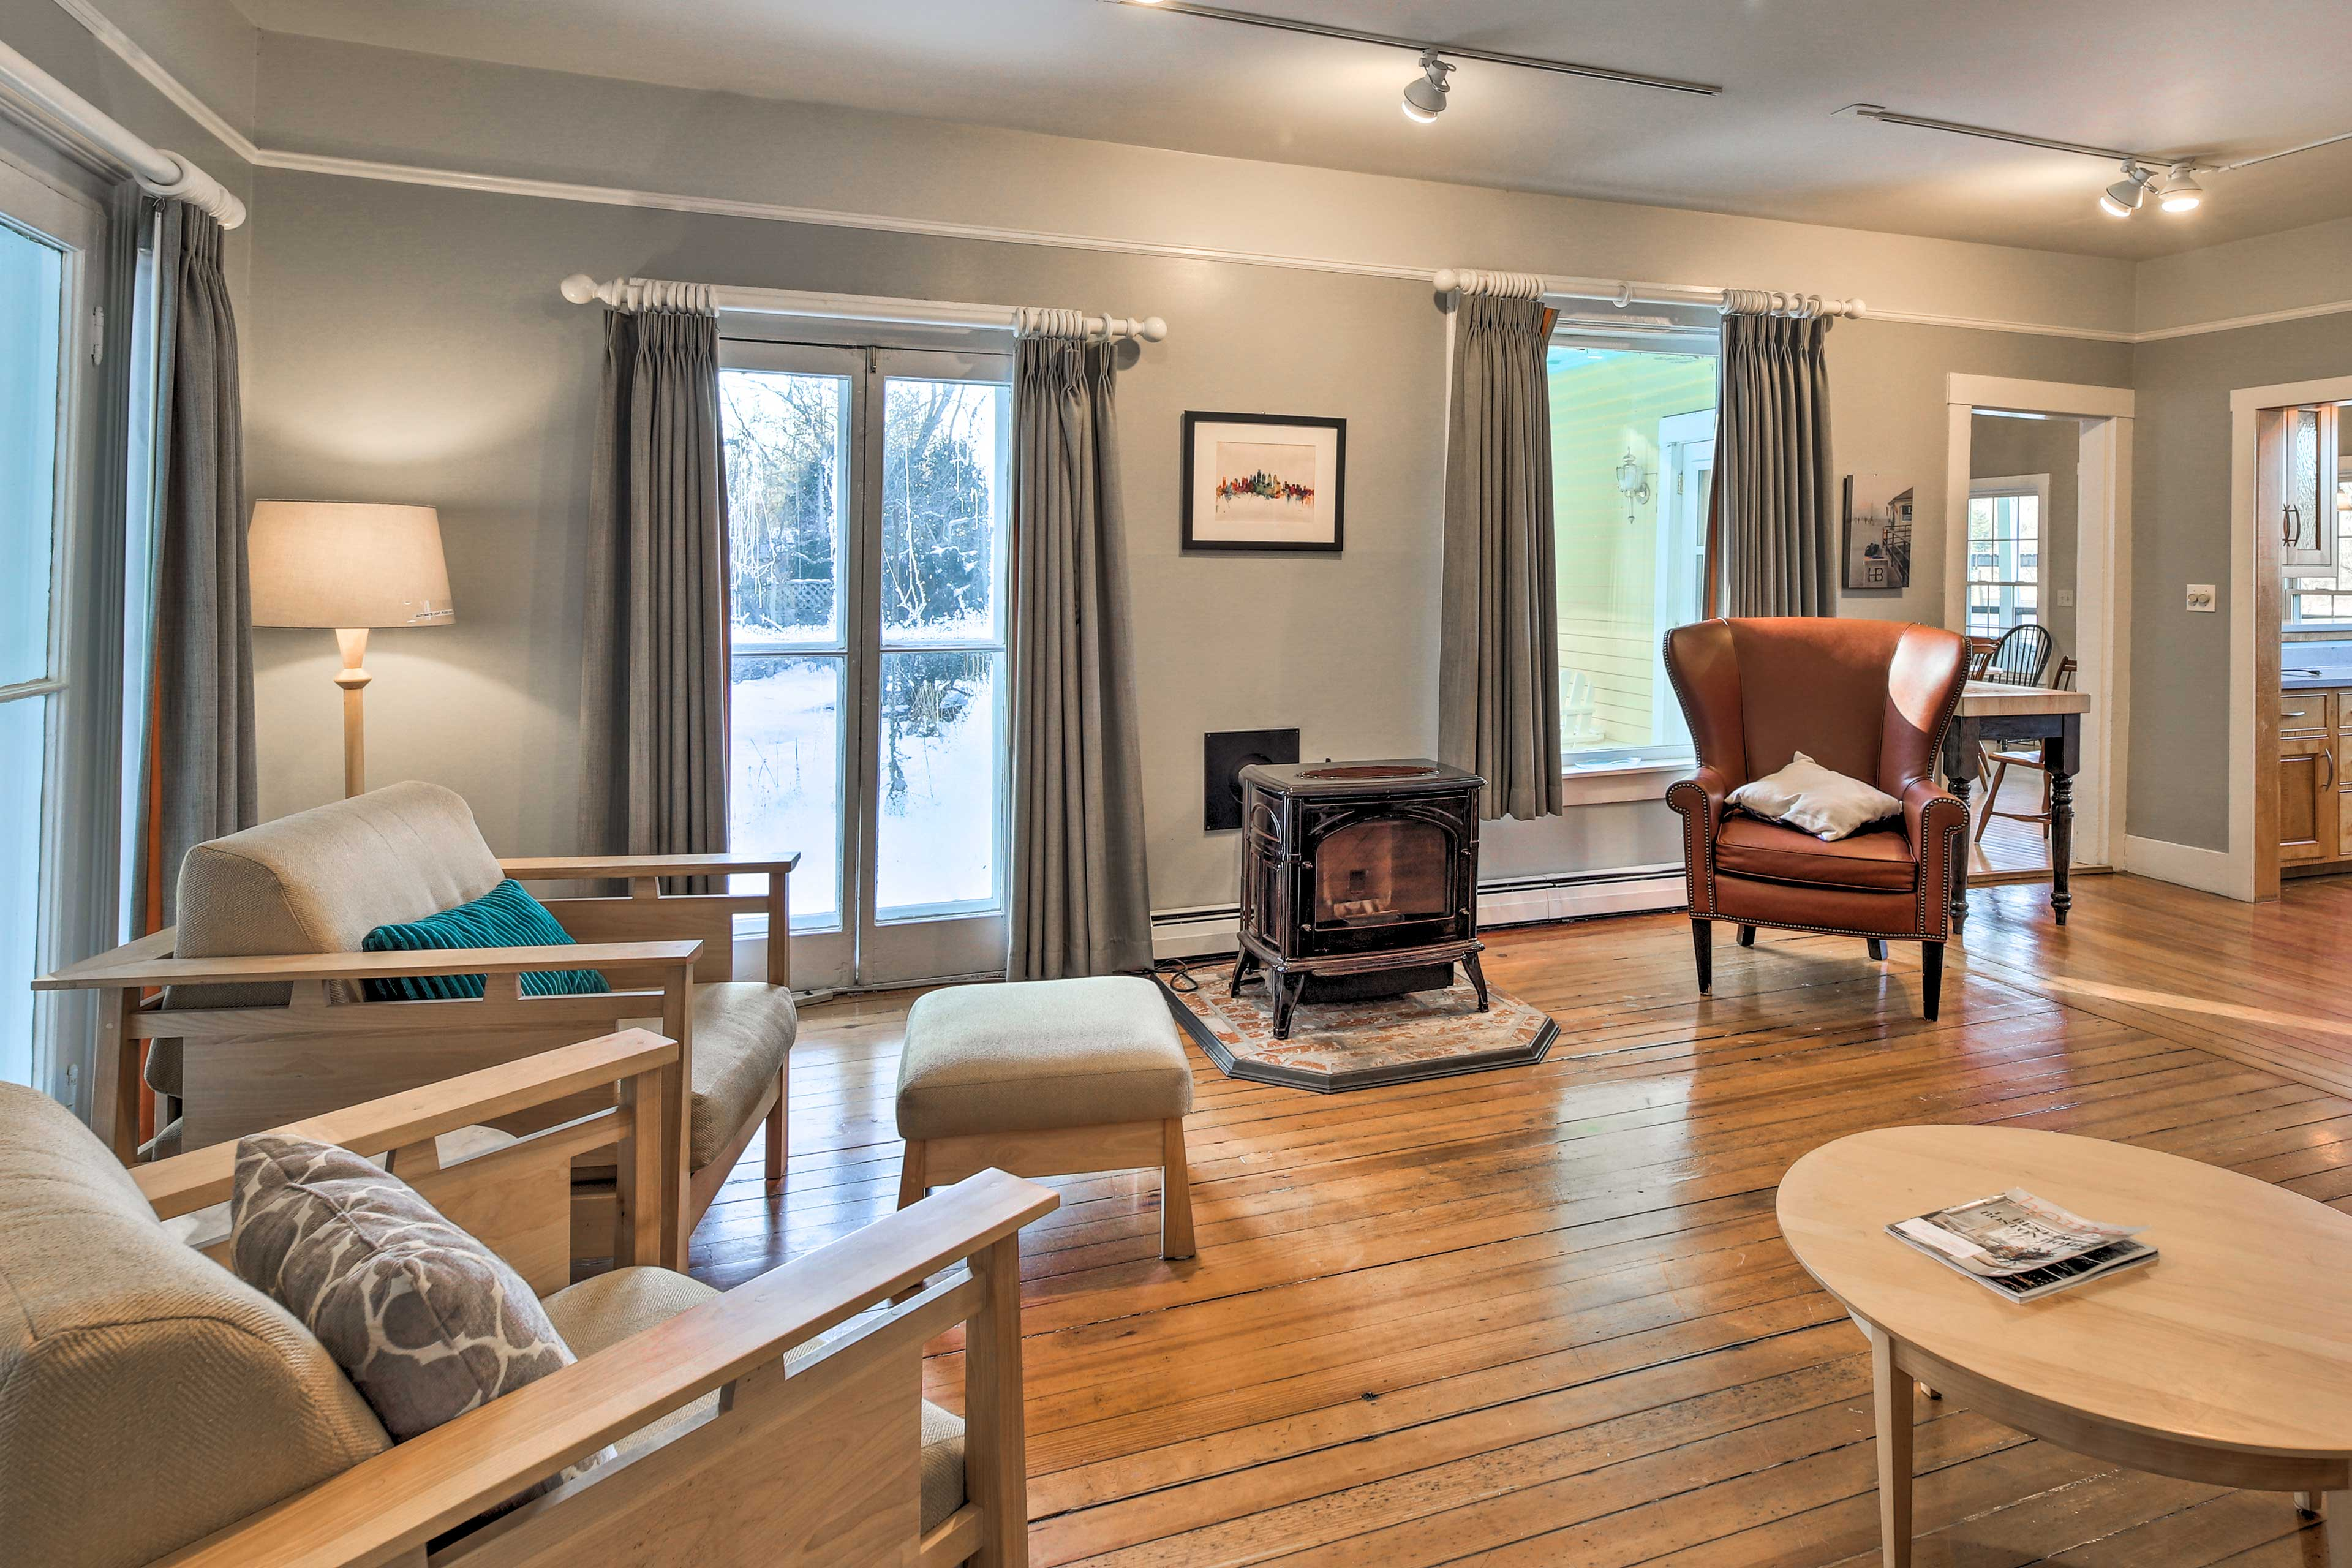 Warm your post-ski toes next to the 'wood-burning' gas stove.